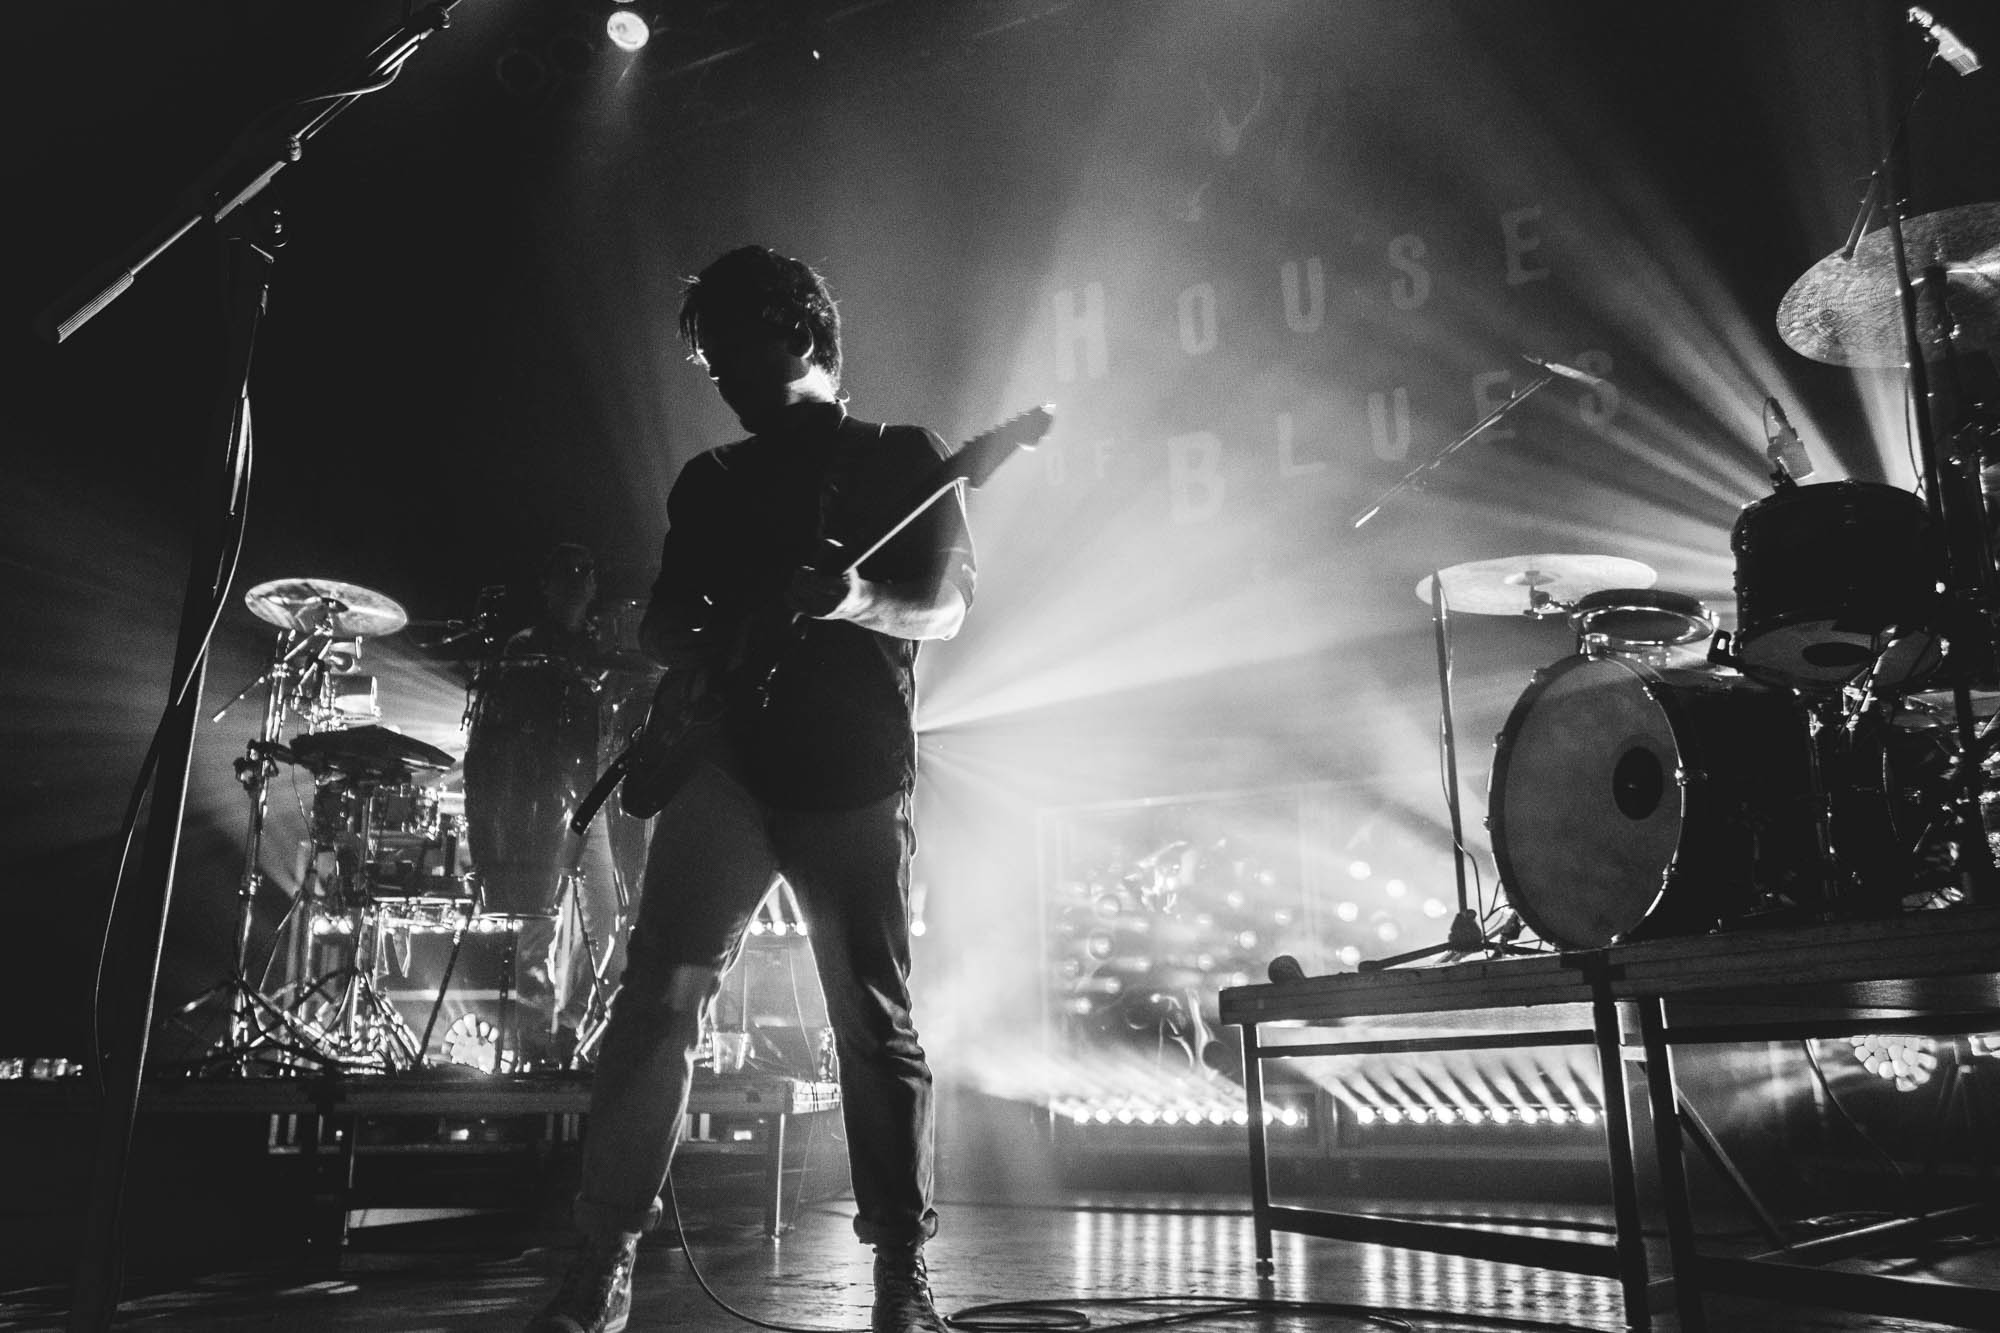 Milk Chance - The Blossom Tour • with Lewis Capaldi1.8.17 // House of Blues // San Diego, CA